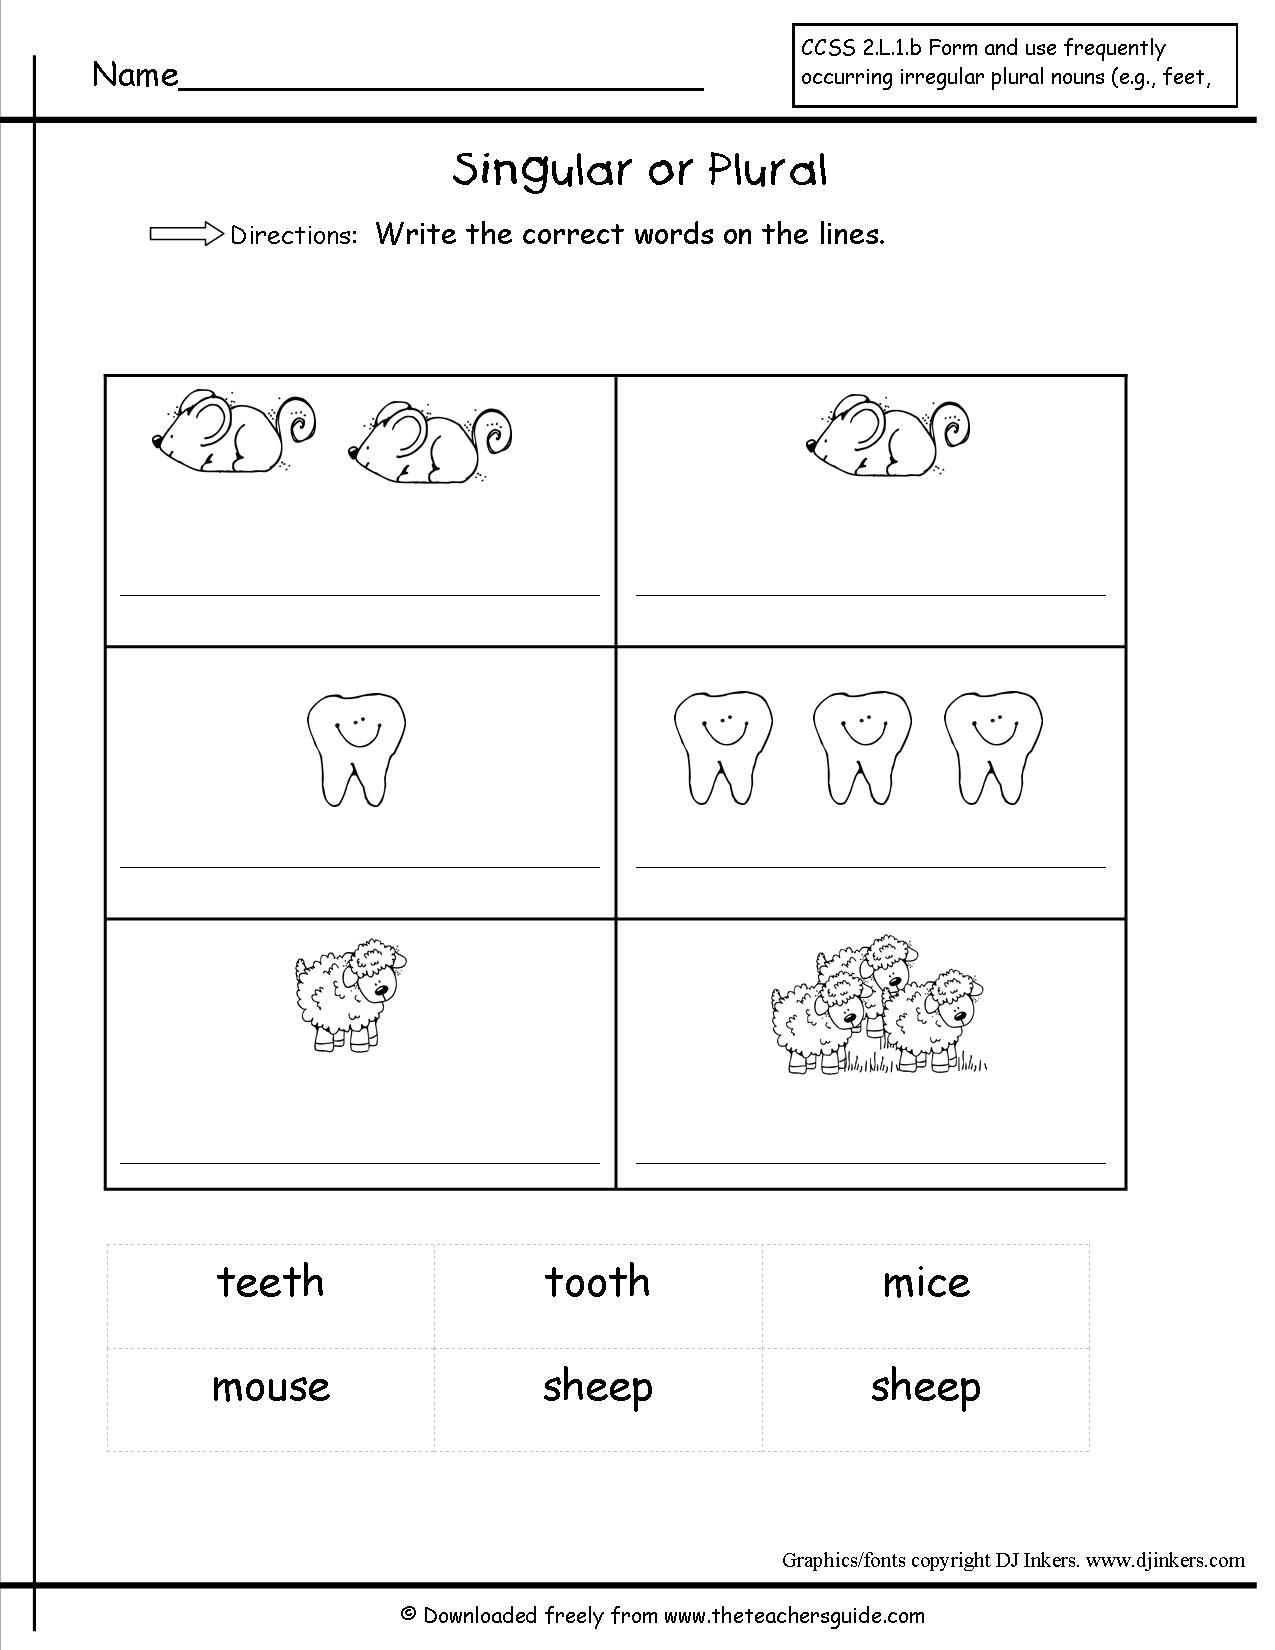 Worksheets Irregular Plurals Worksheet irregular plural nouns worksheet school reading pinterest worksheet